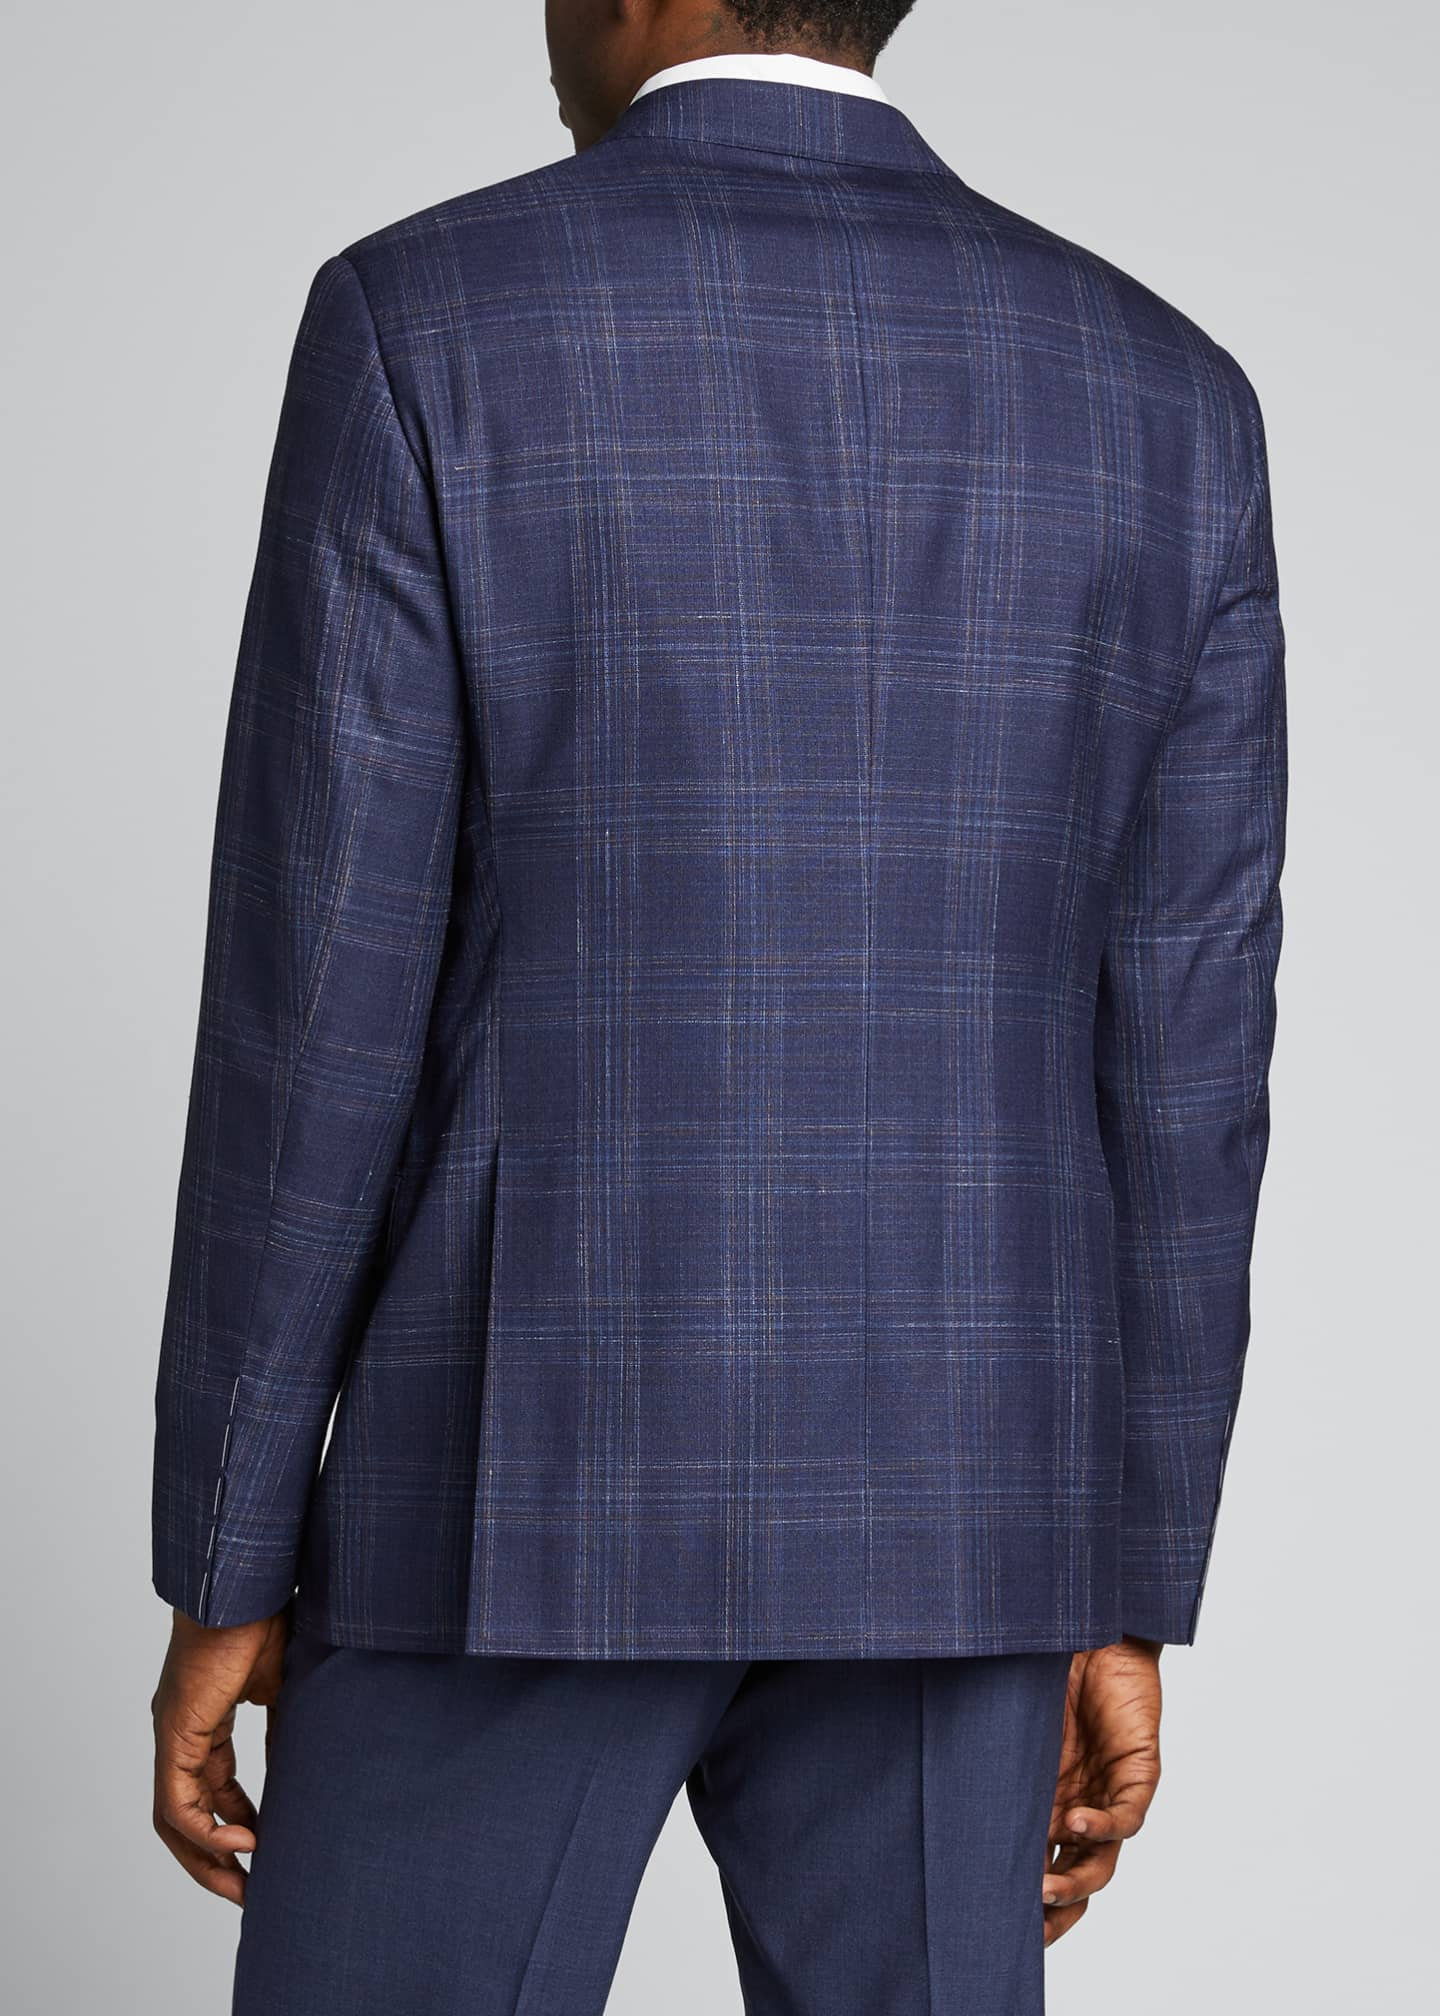 Image 2 of 5: Men's Plaid Wool Two-Button Jacket